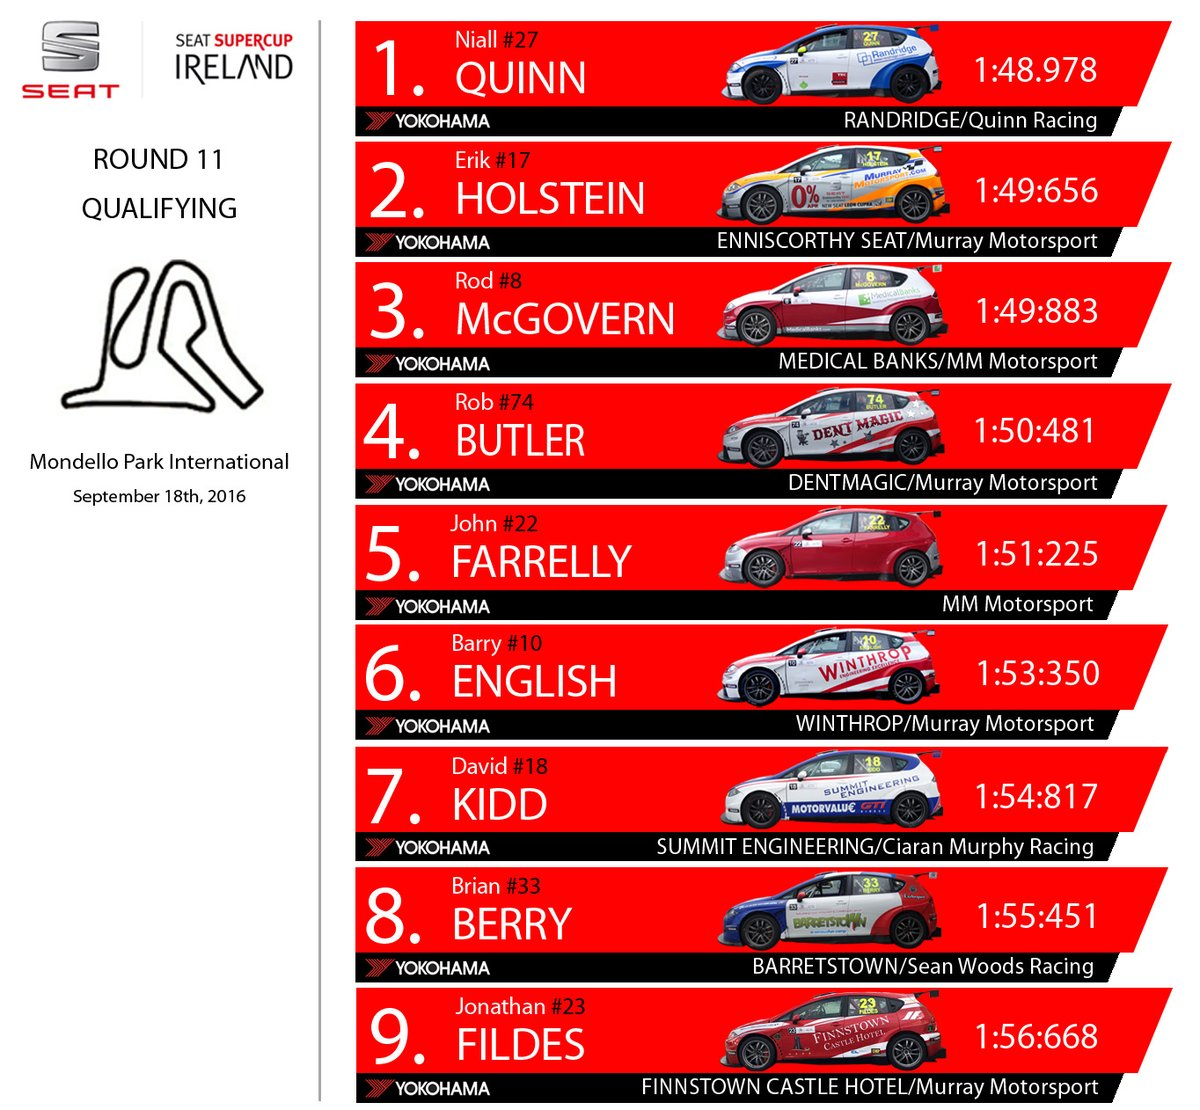 seat-qualifying-final